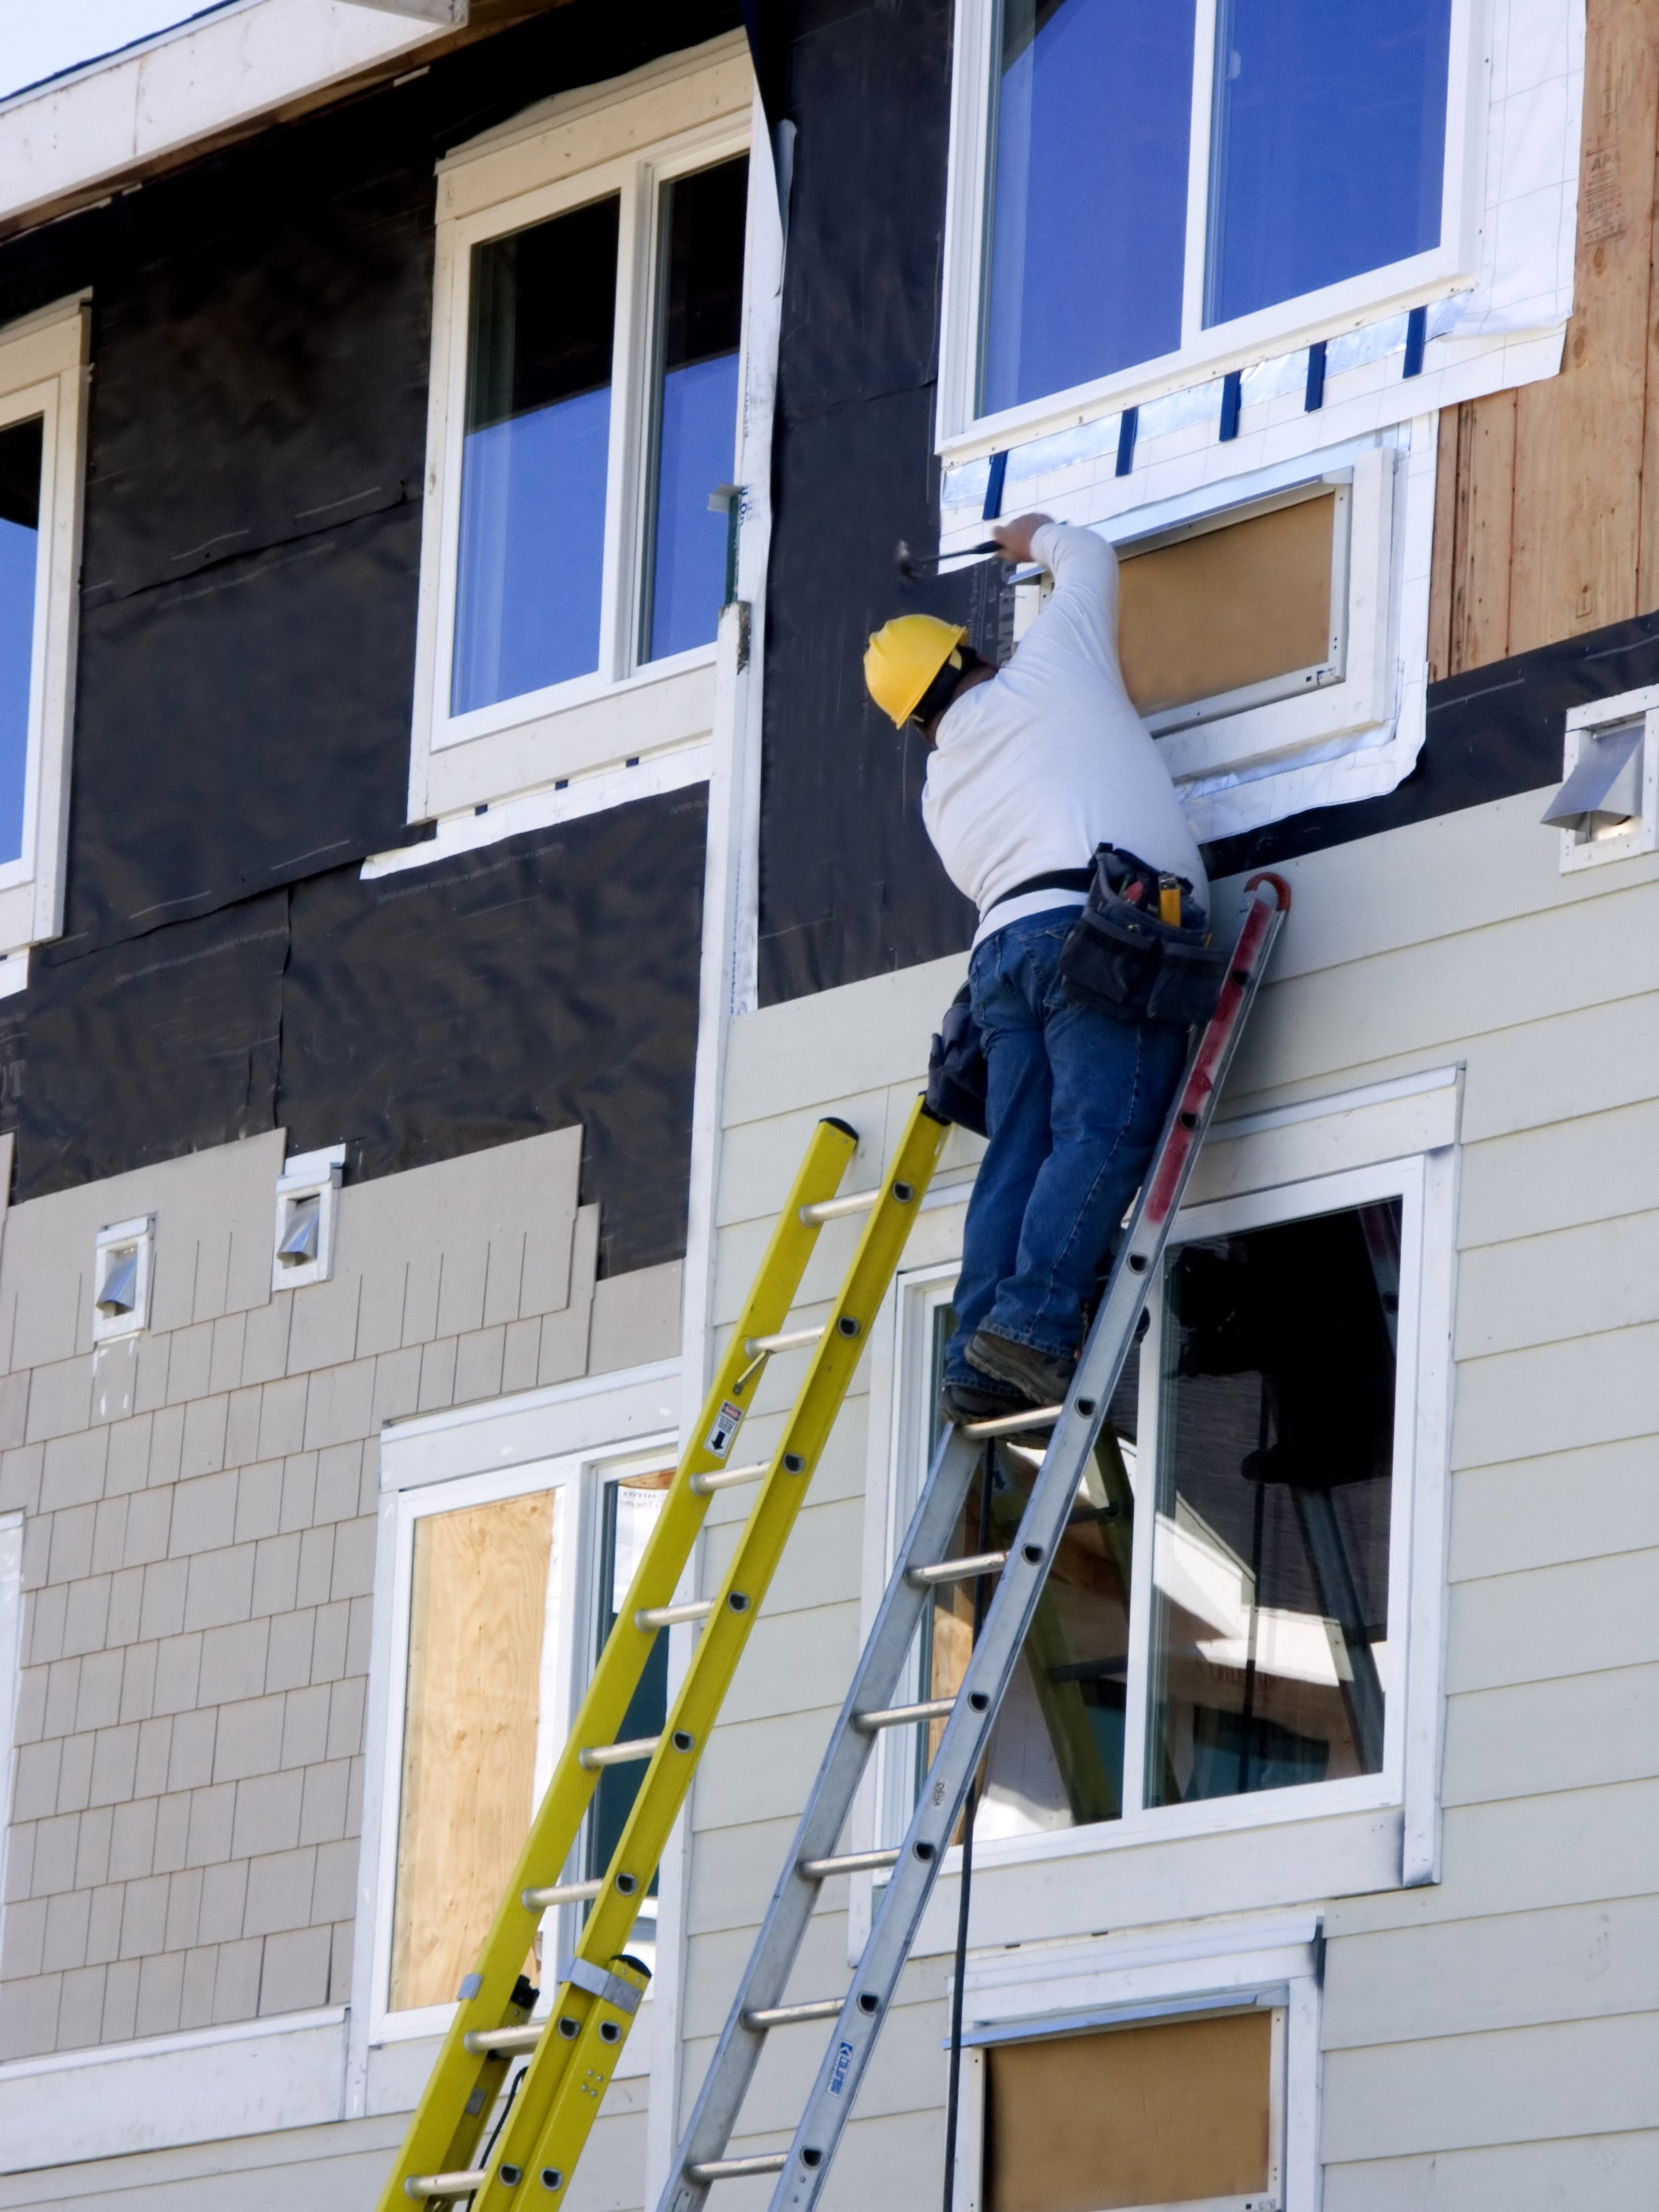 Consctruction worker hanging siding on new apartment building under consctruction.